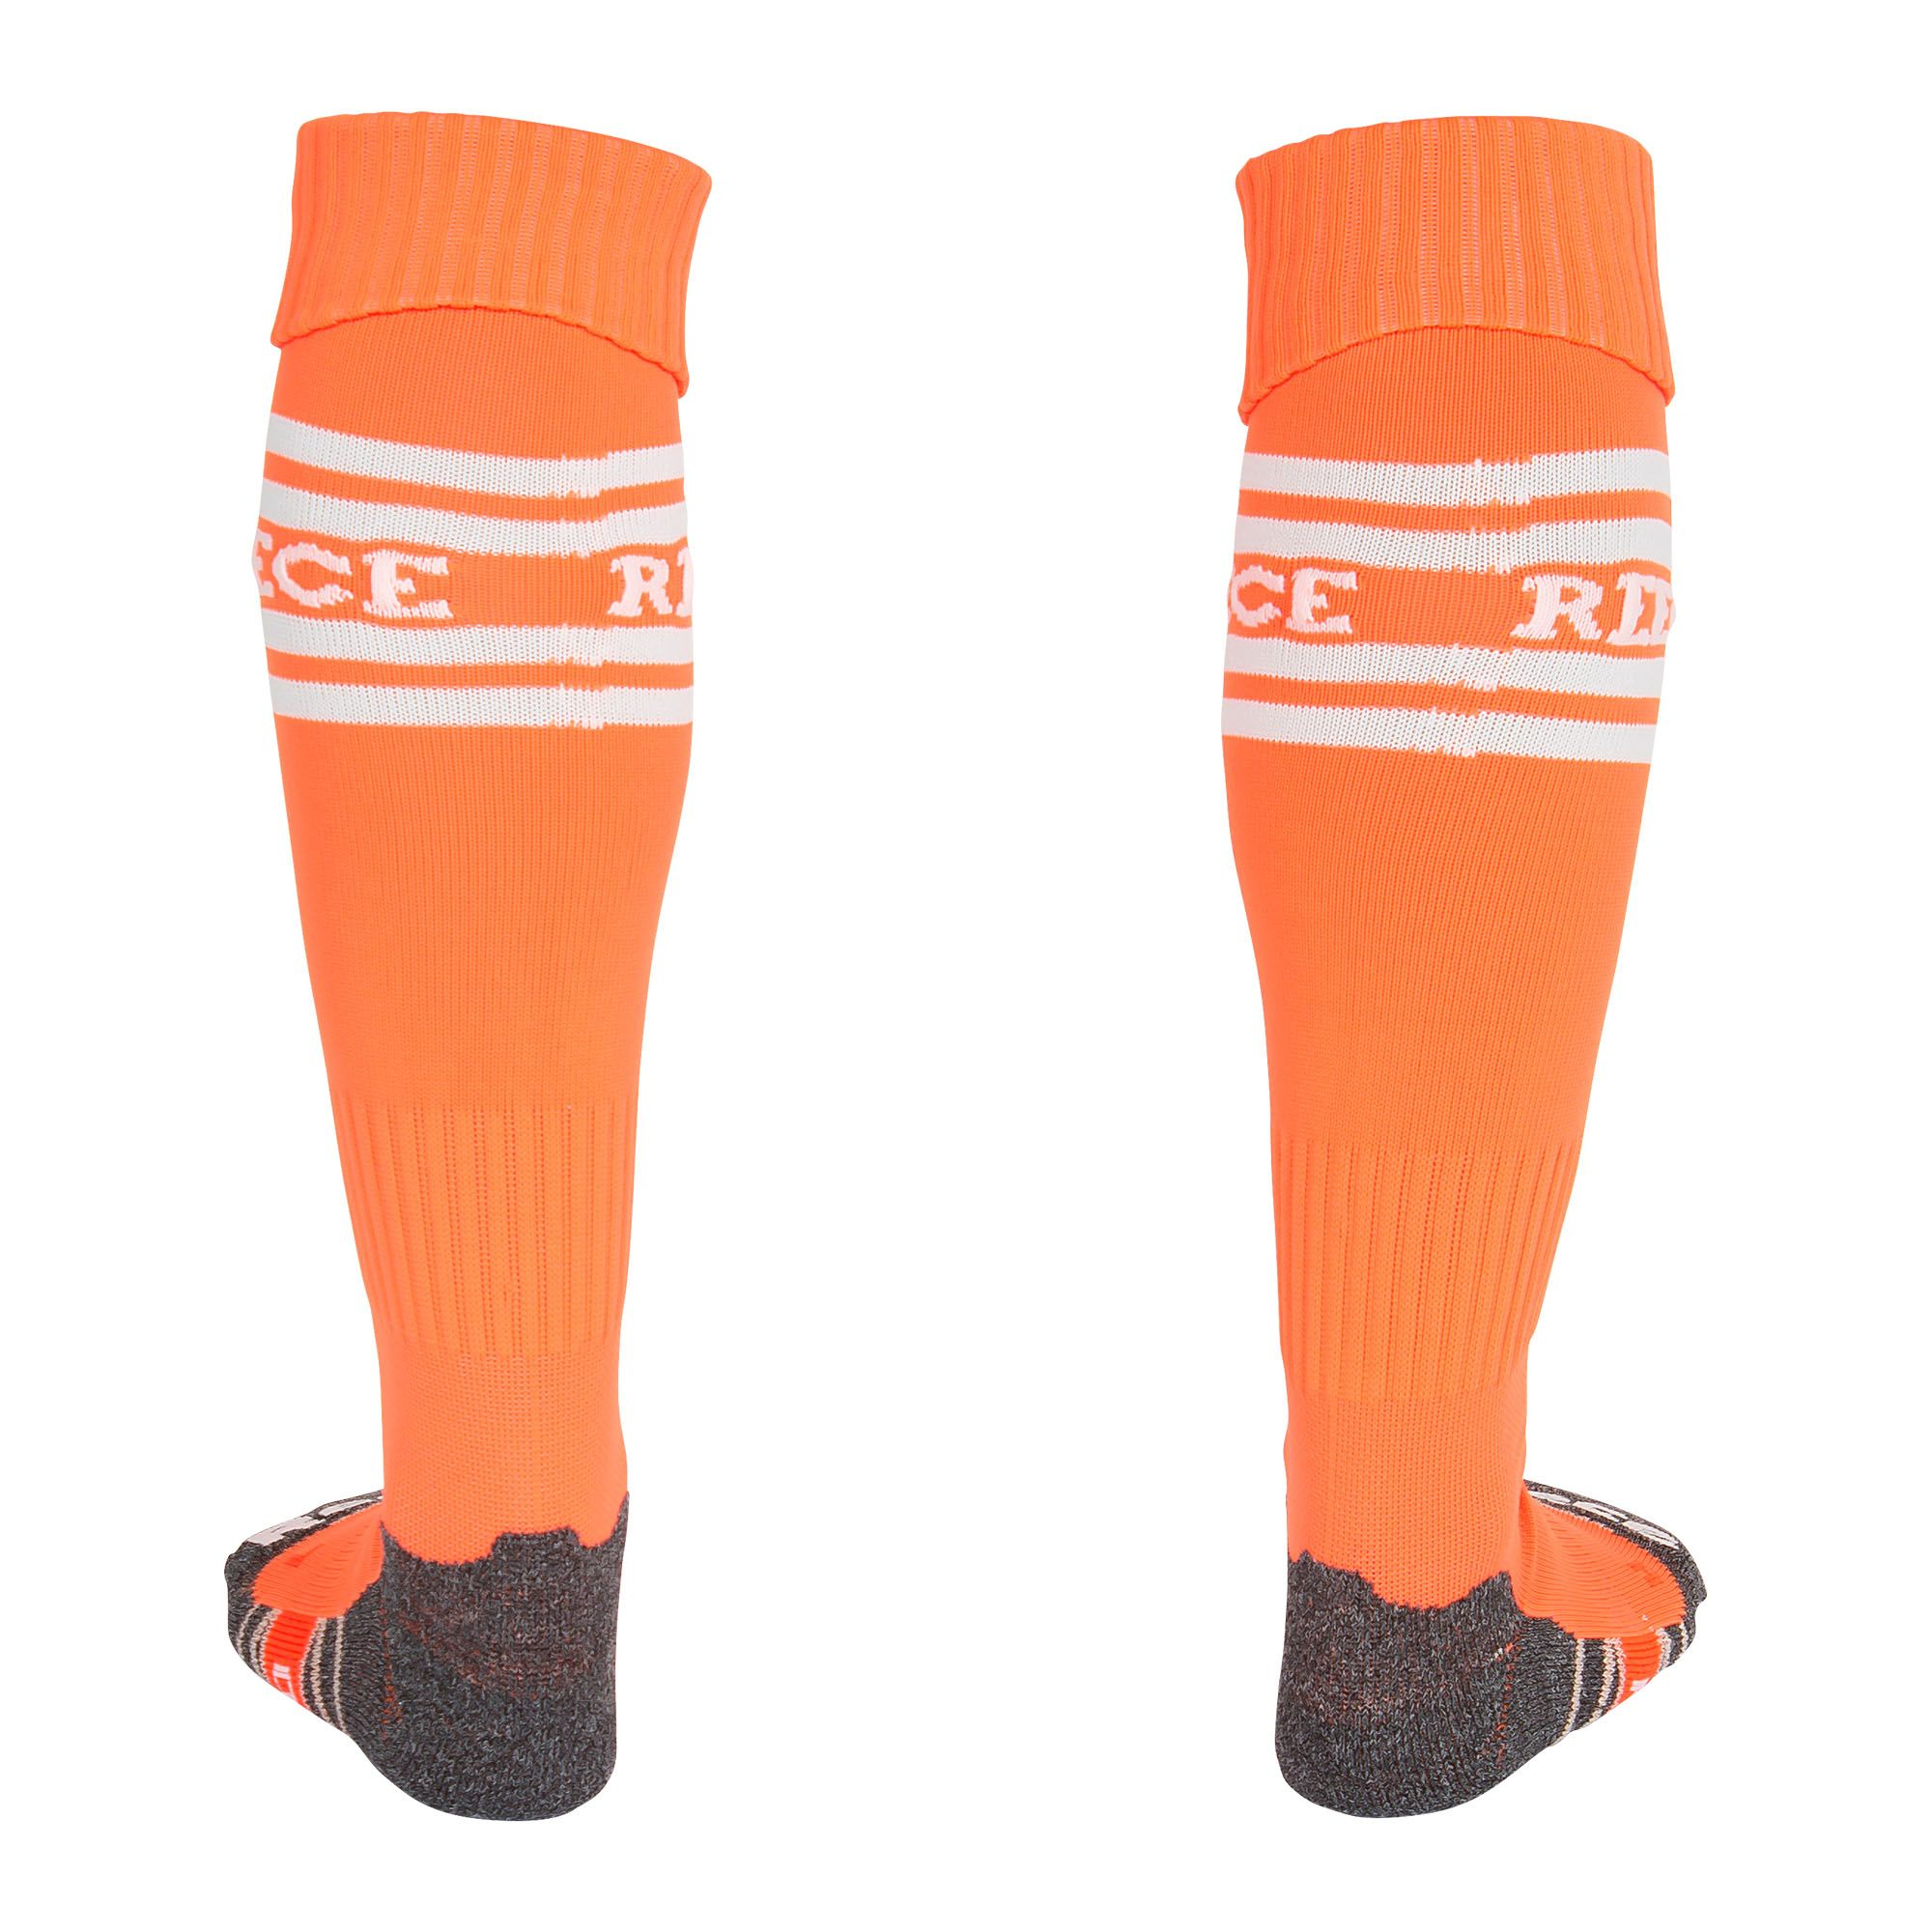 Reece College Stutzenstrumpf Hockey Str/ümpfe neon orange